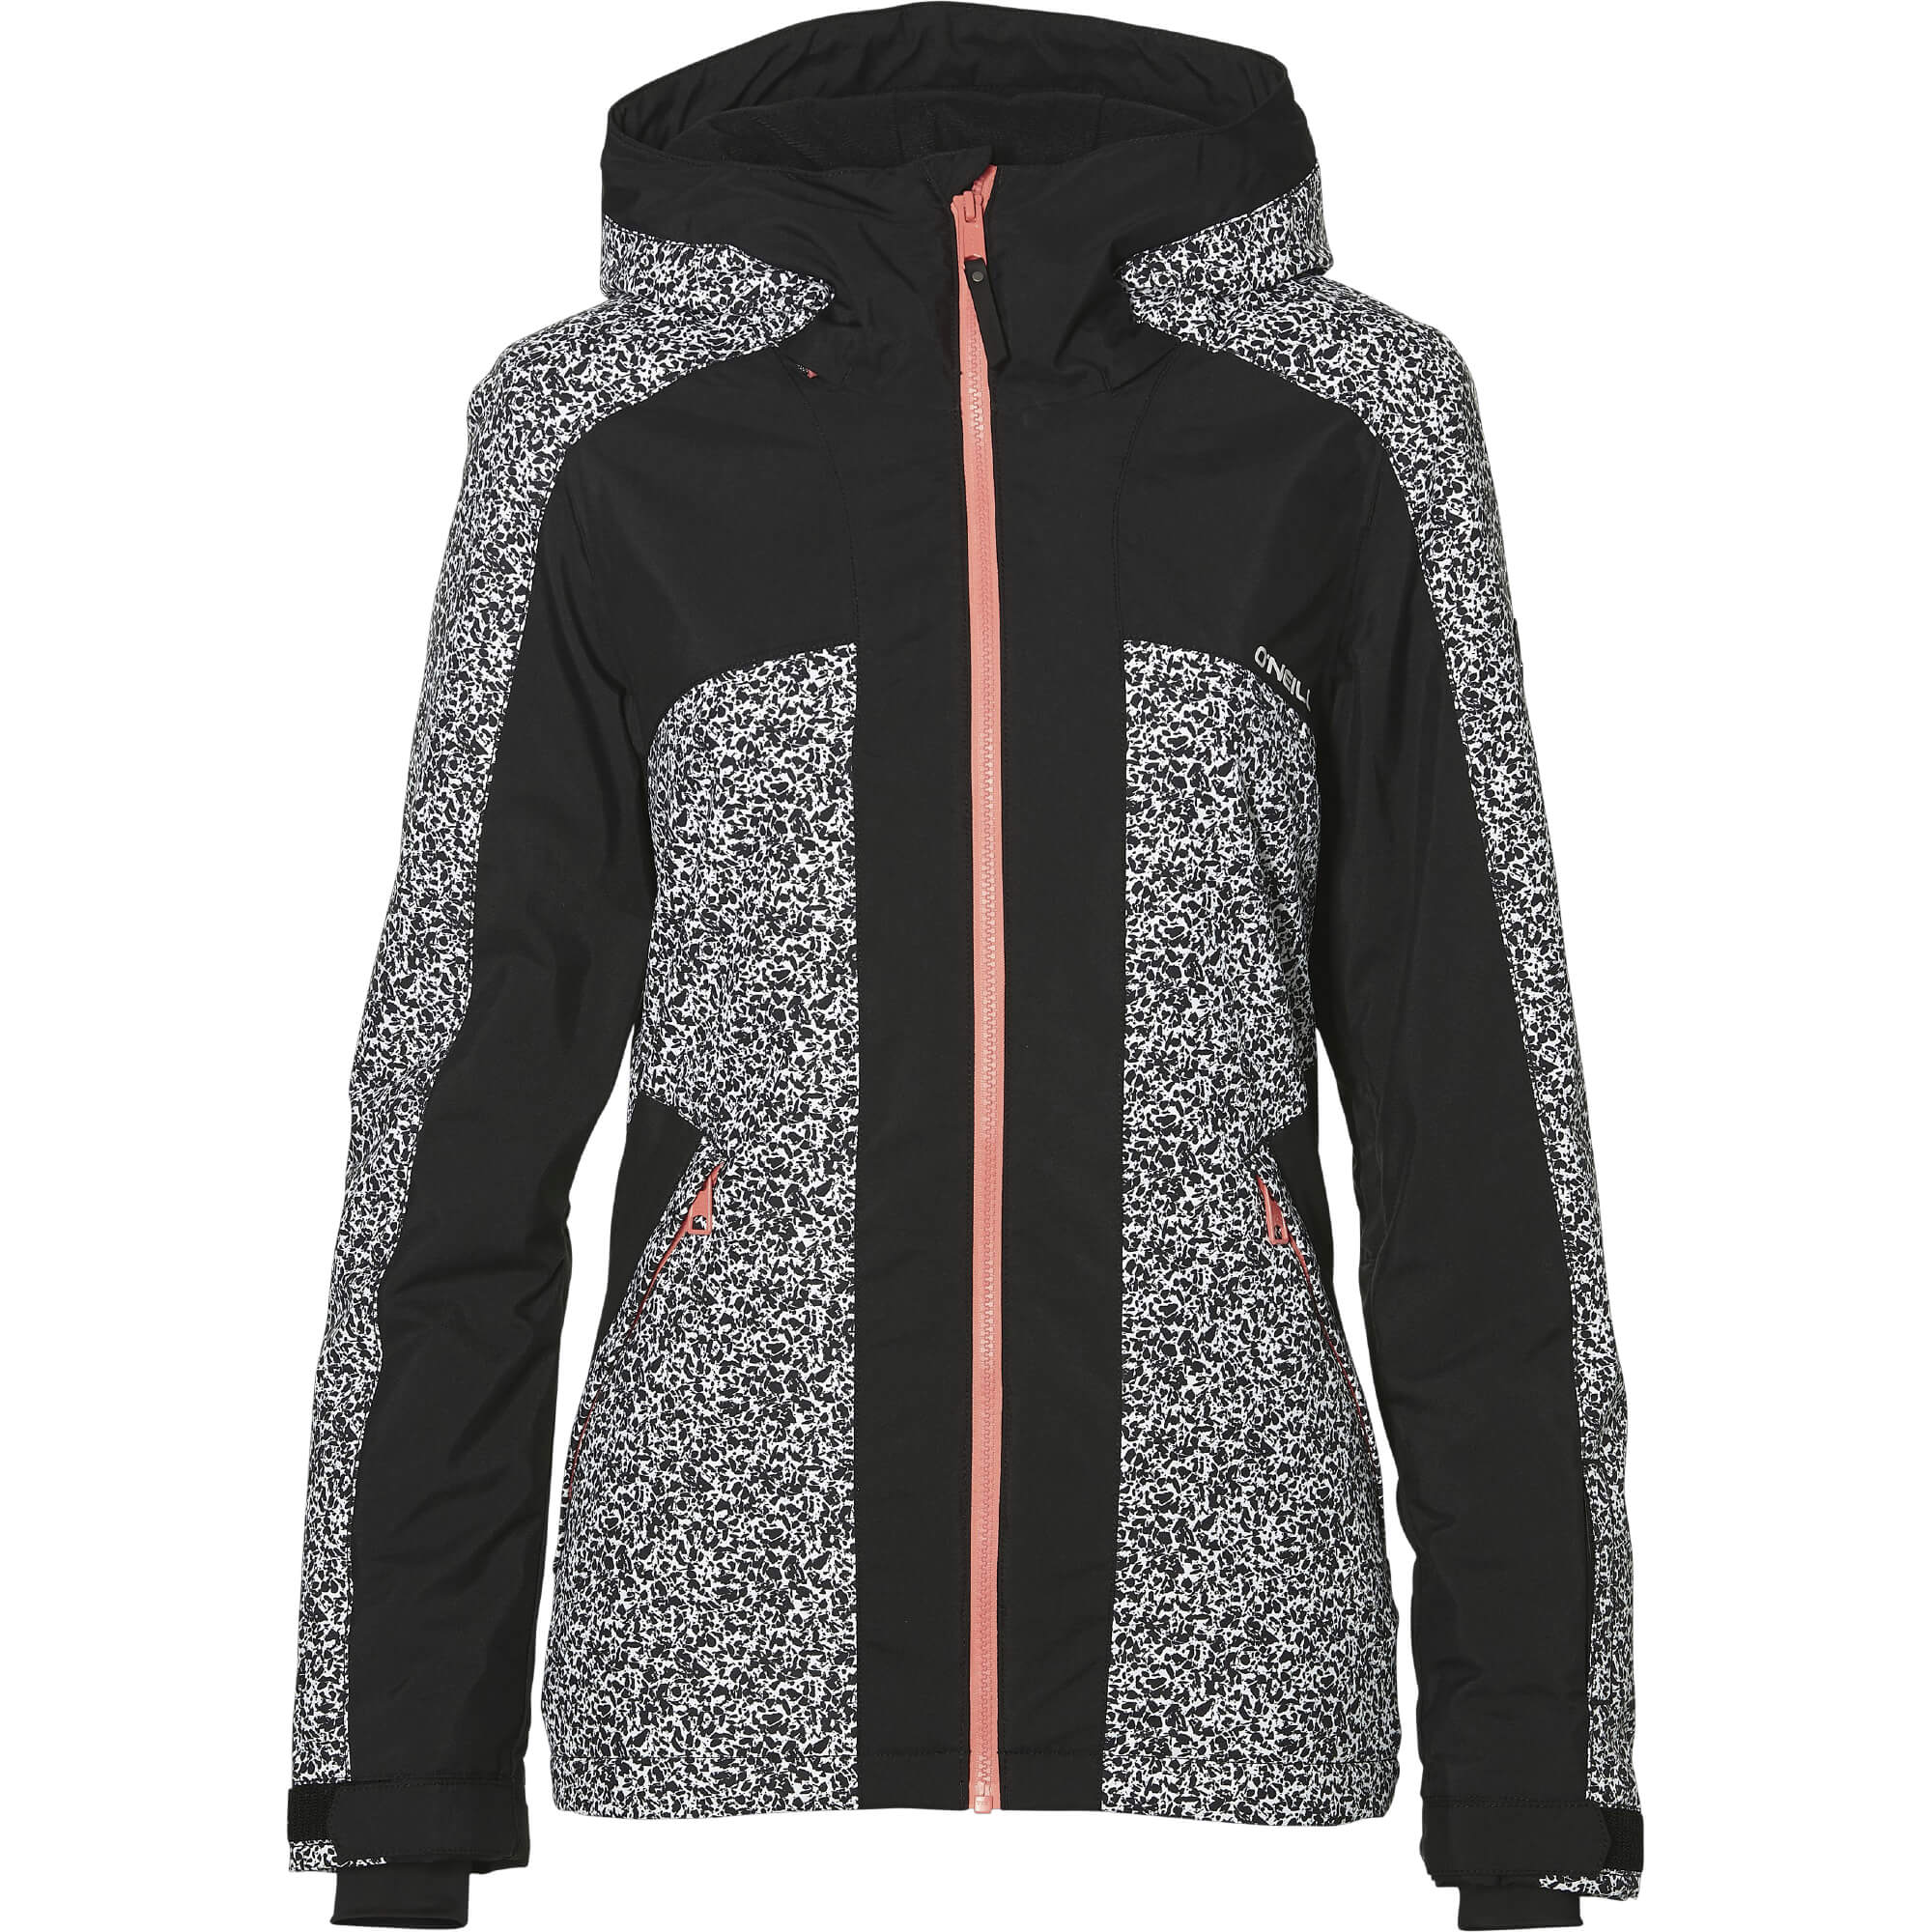 PW Allure Jacket imagine produs